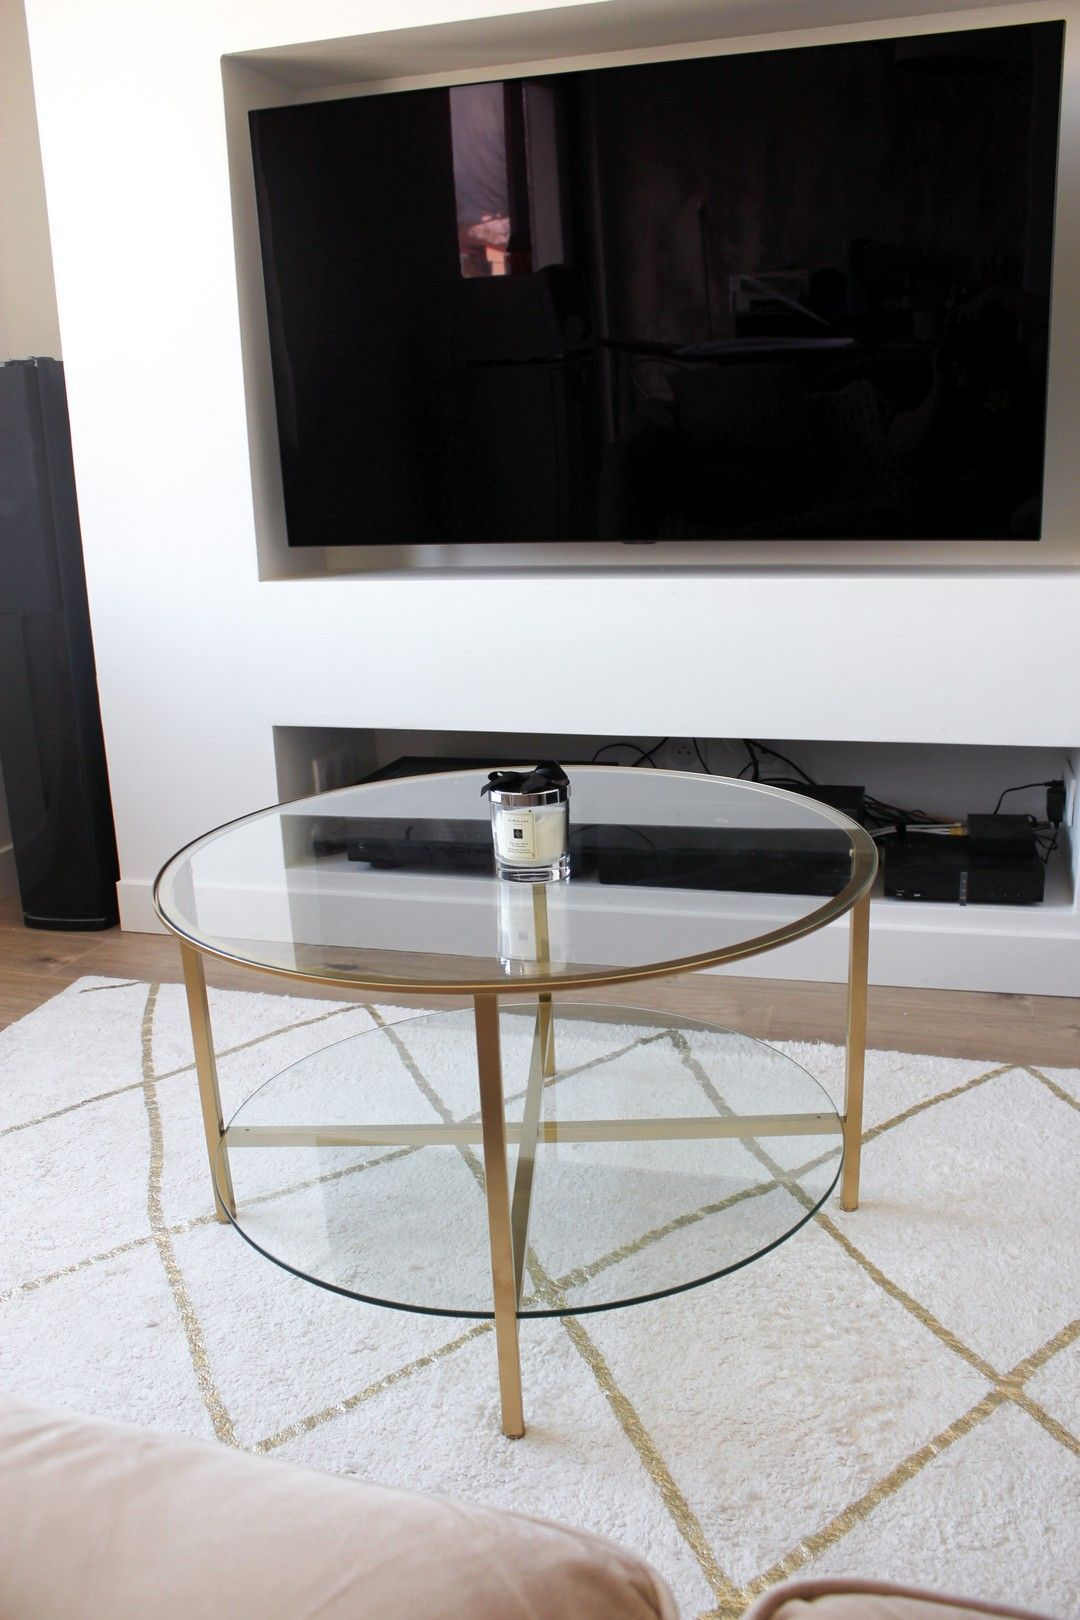 59 Ikea Hack Planked Coffee Table Coffee Table Ikea Hack Ikea Round Table Ikea Coffee Table [ 1620 x 1080 Pixel ]